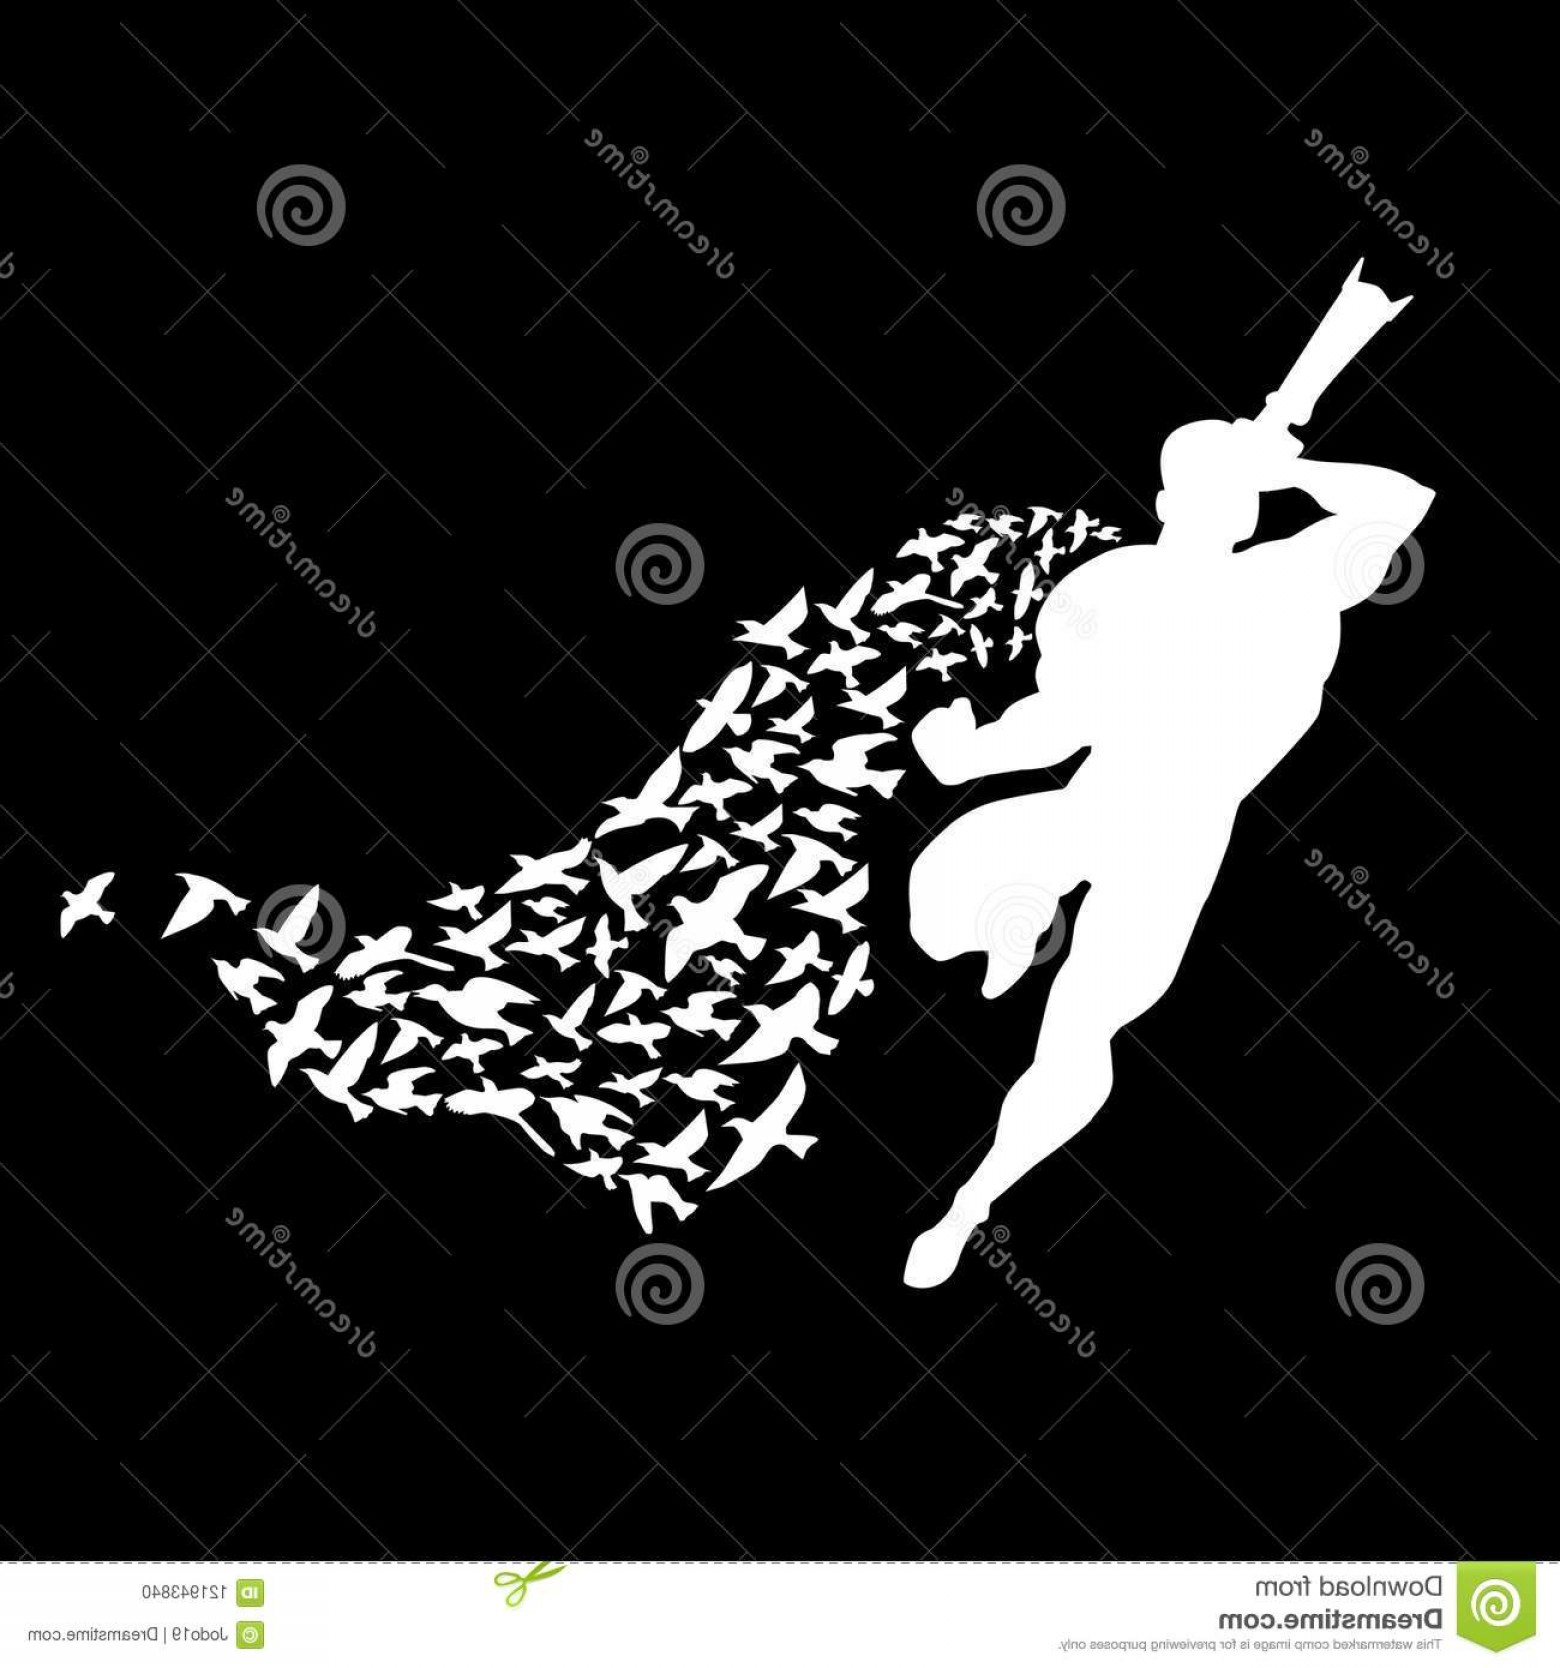 Superman Black And White Vector: Superman Photographer Cloak Birds Superman Photographer Cloak Birds White Silhouette Black Background Vector D Image